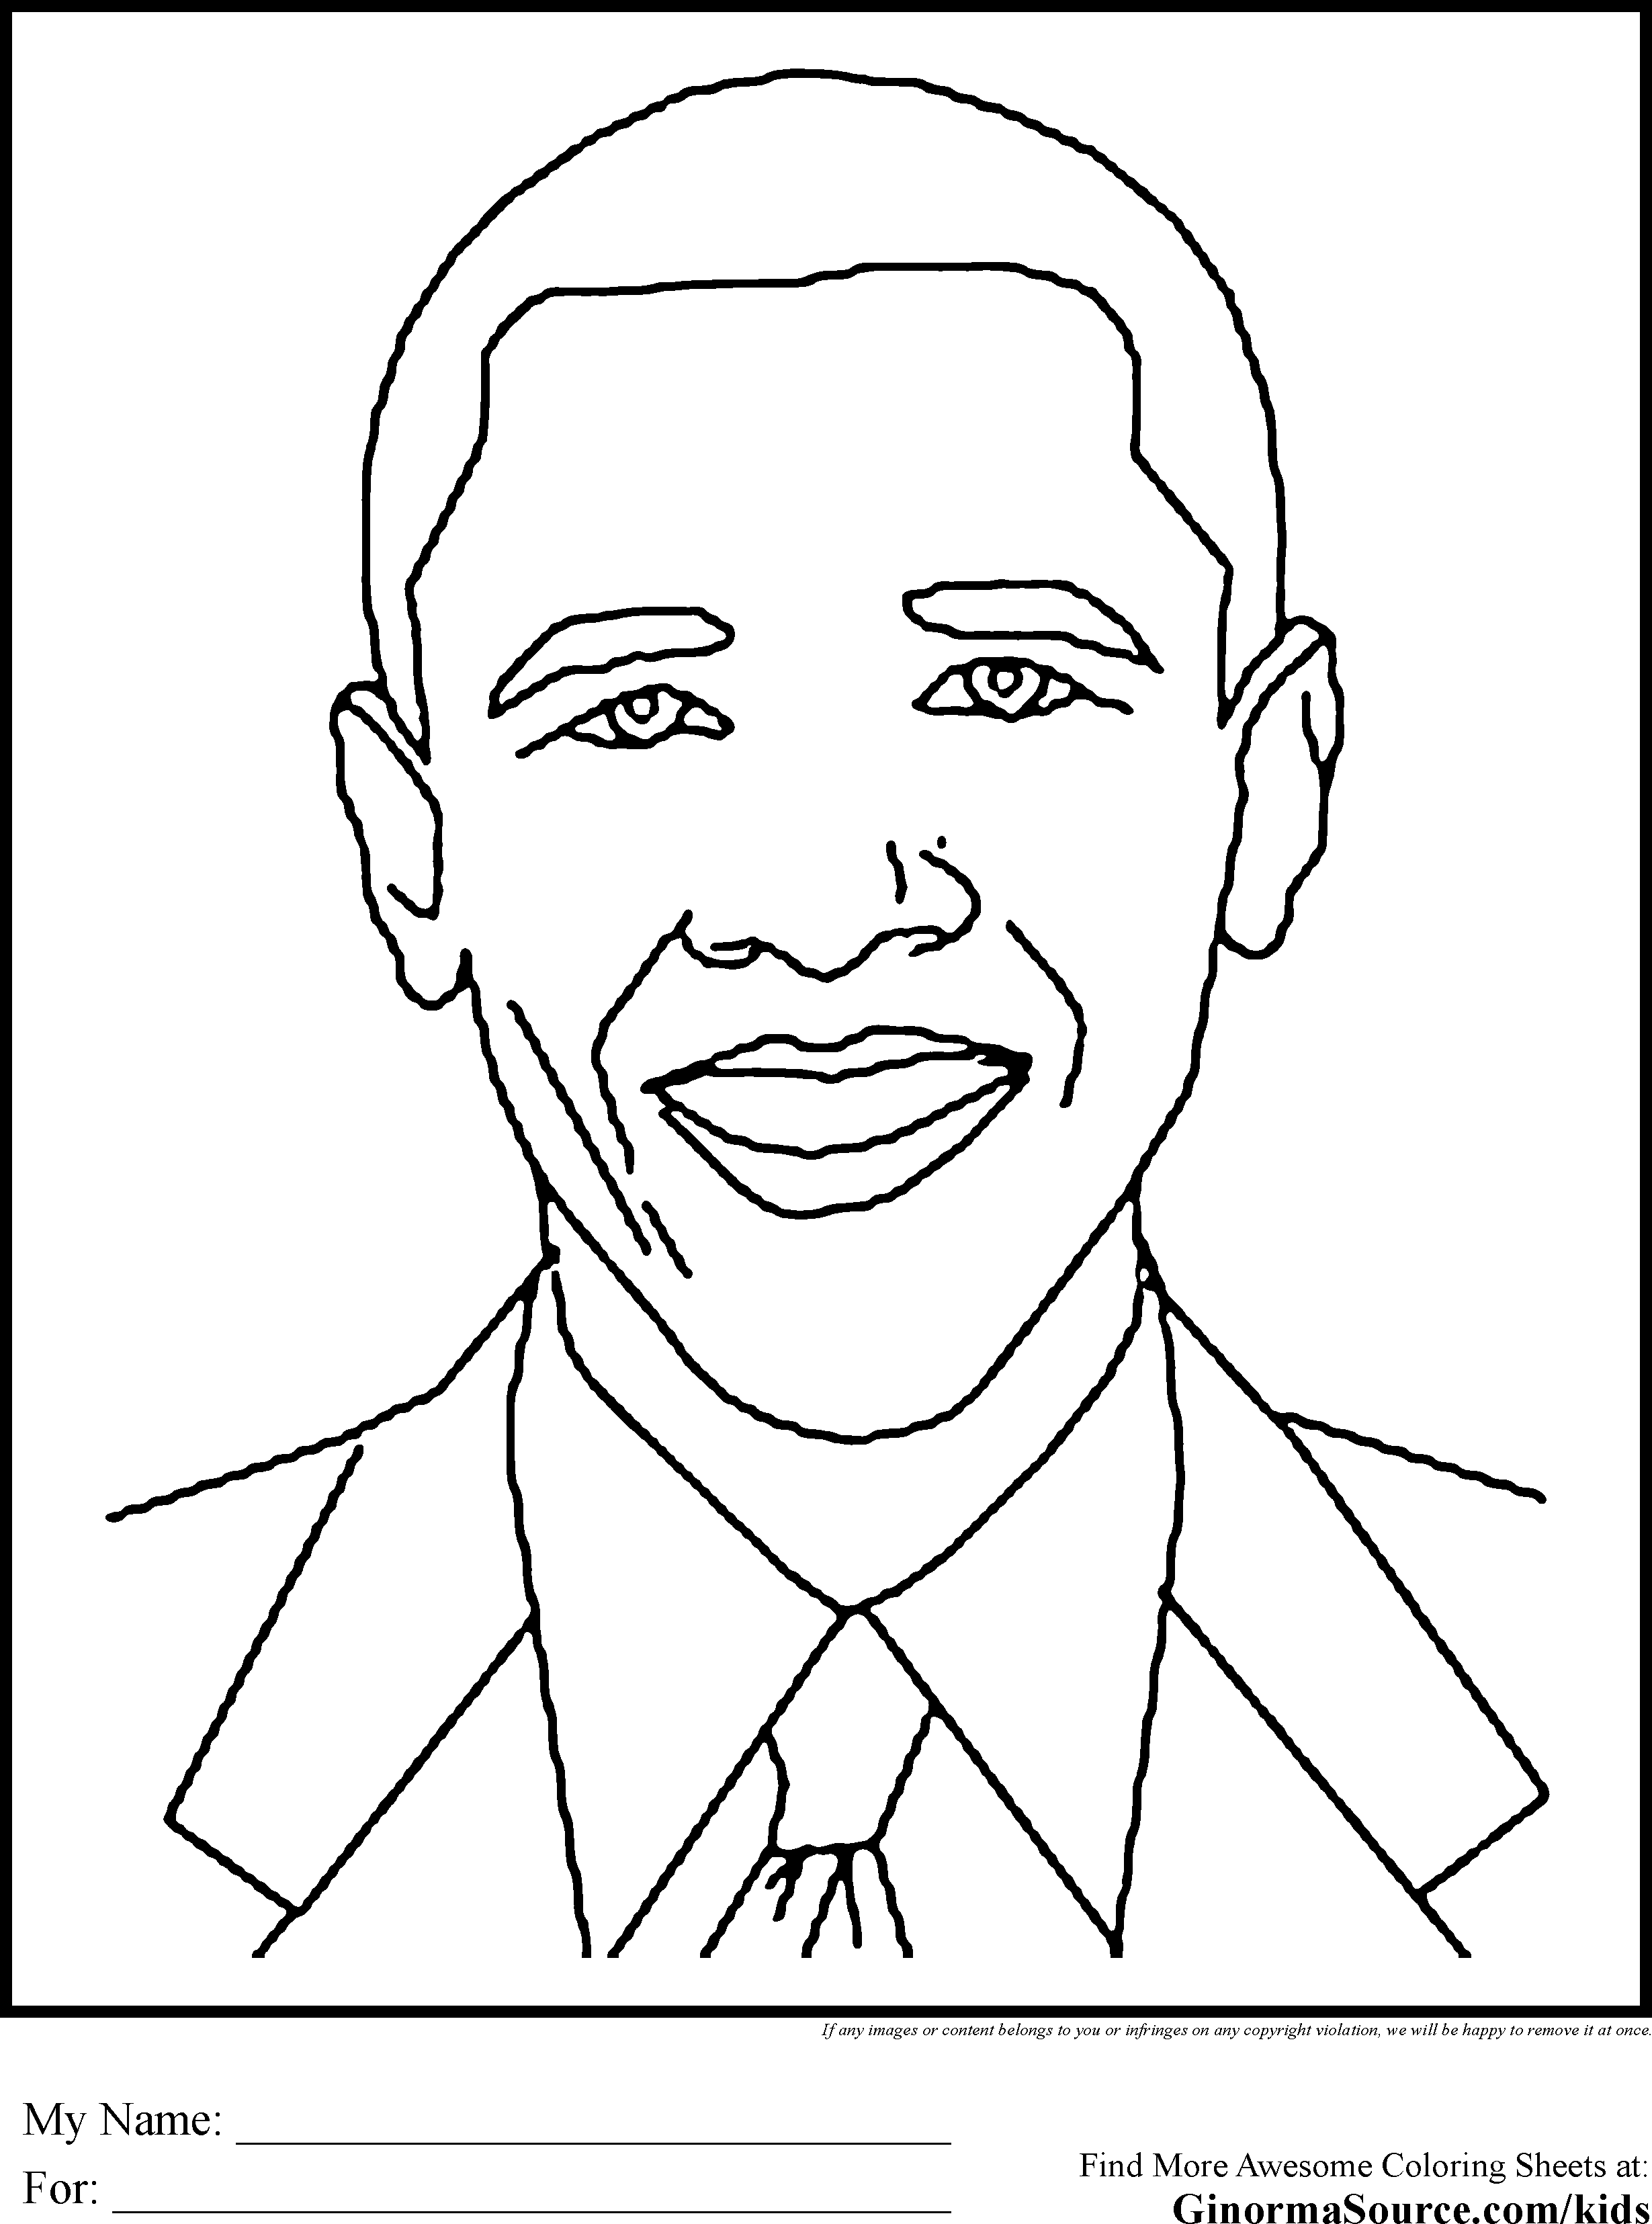 page muhammad islaamcoloring coloring pages sketch template ...